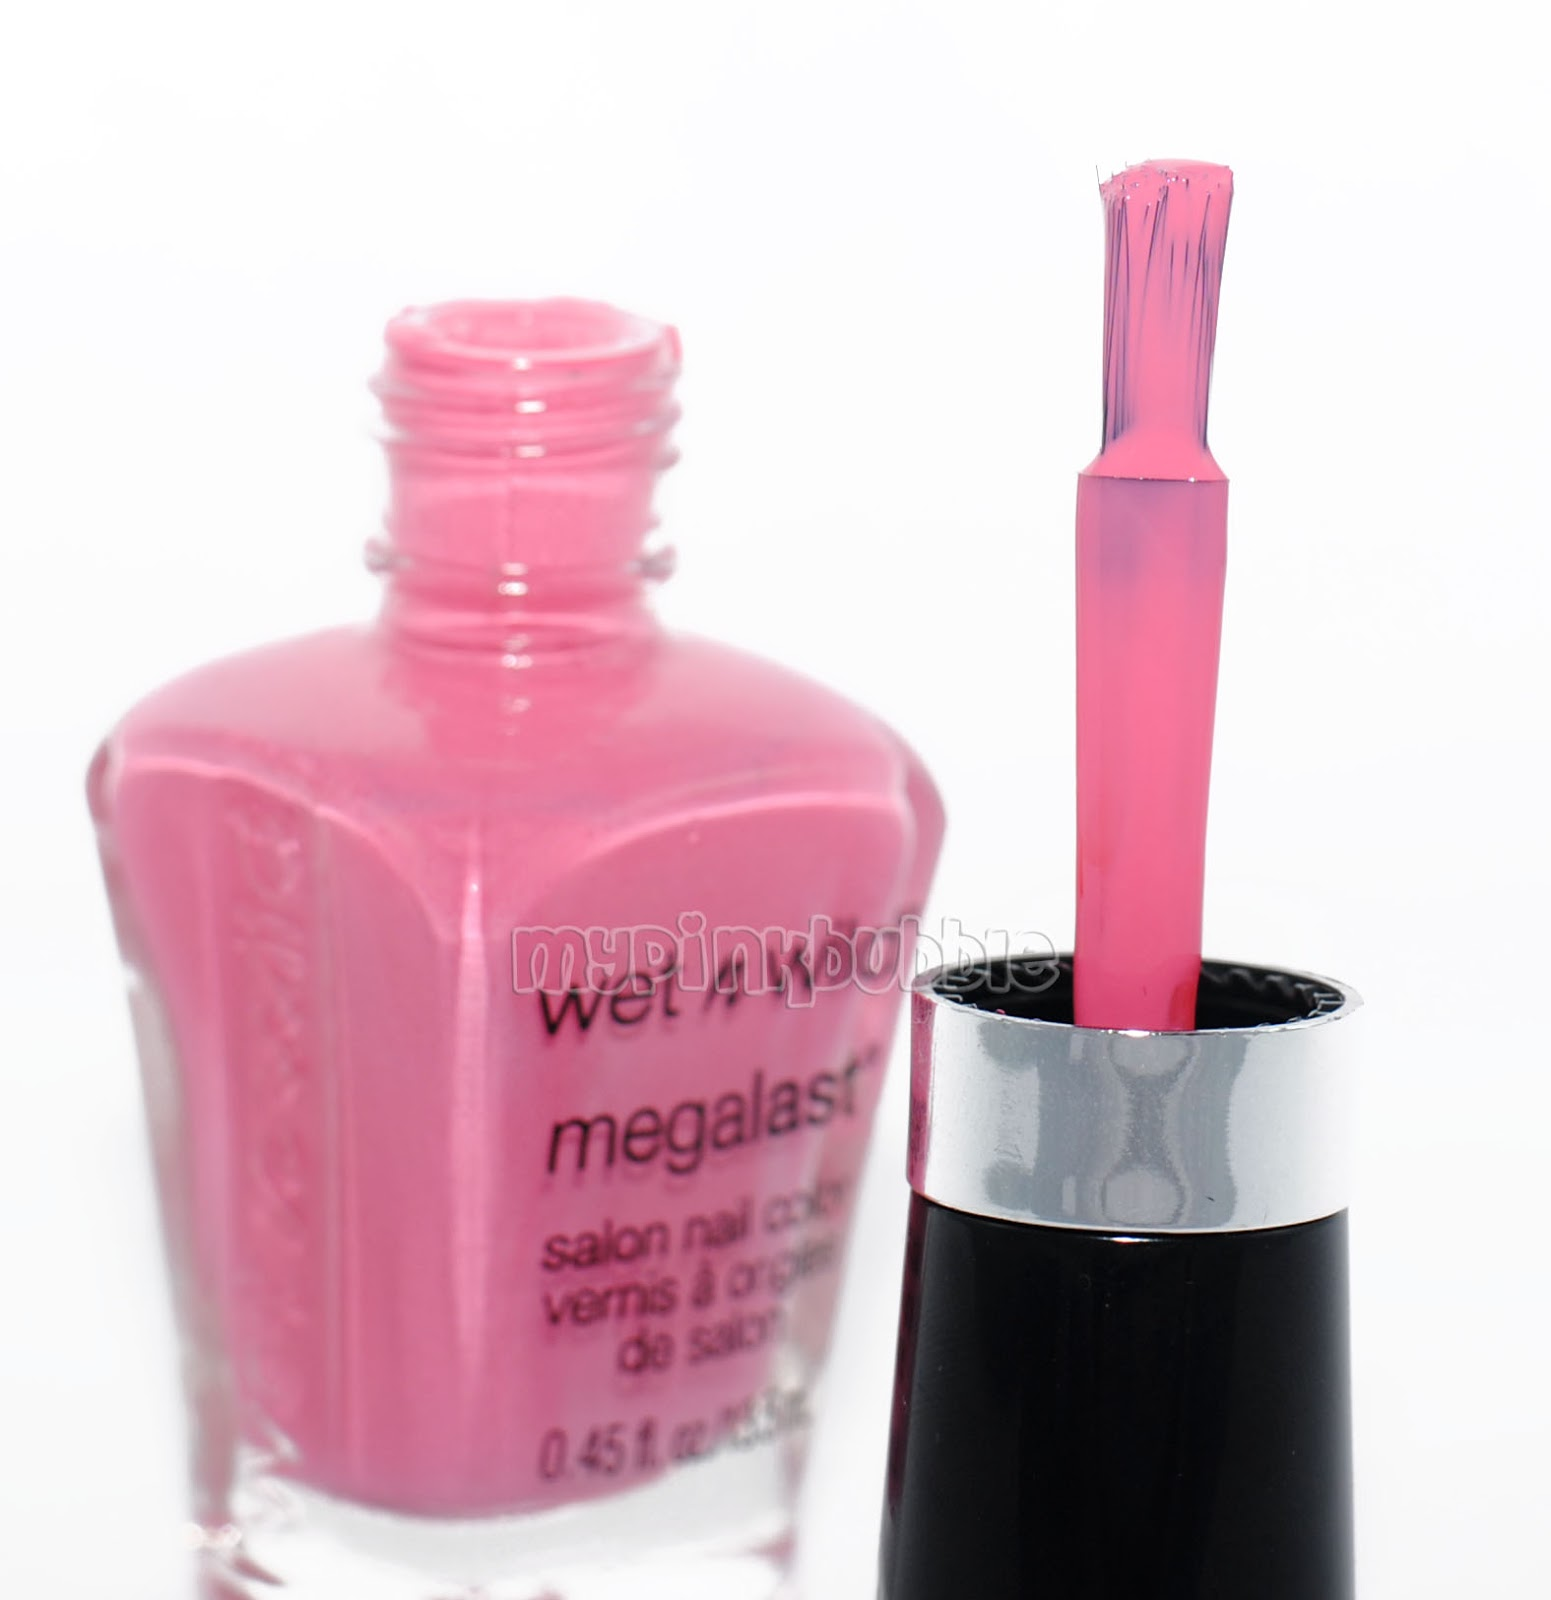 wet n wild megalast candy-licious pincel